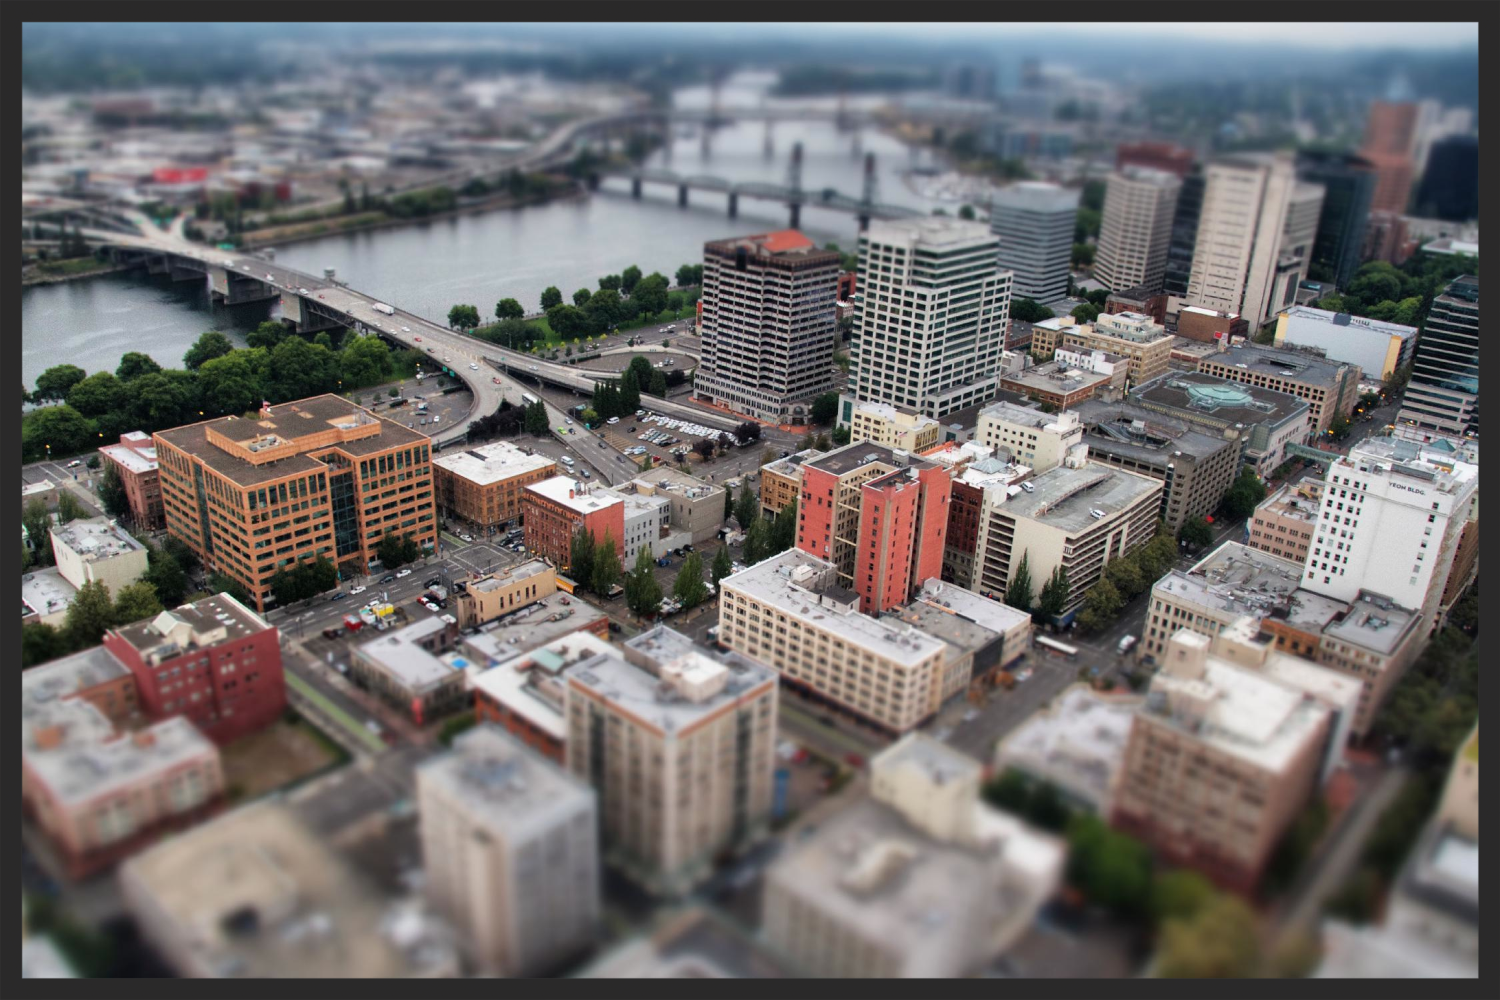 pdx-tilt-shift.jpg 2013-10-2-12:18:36